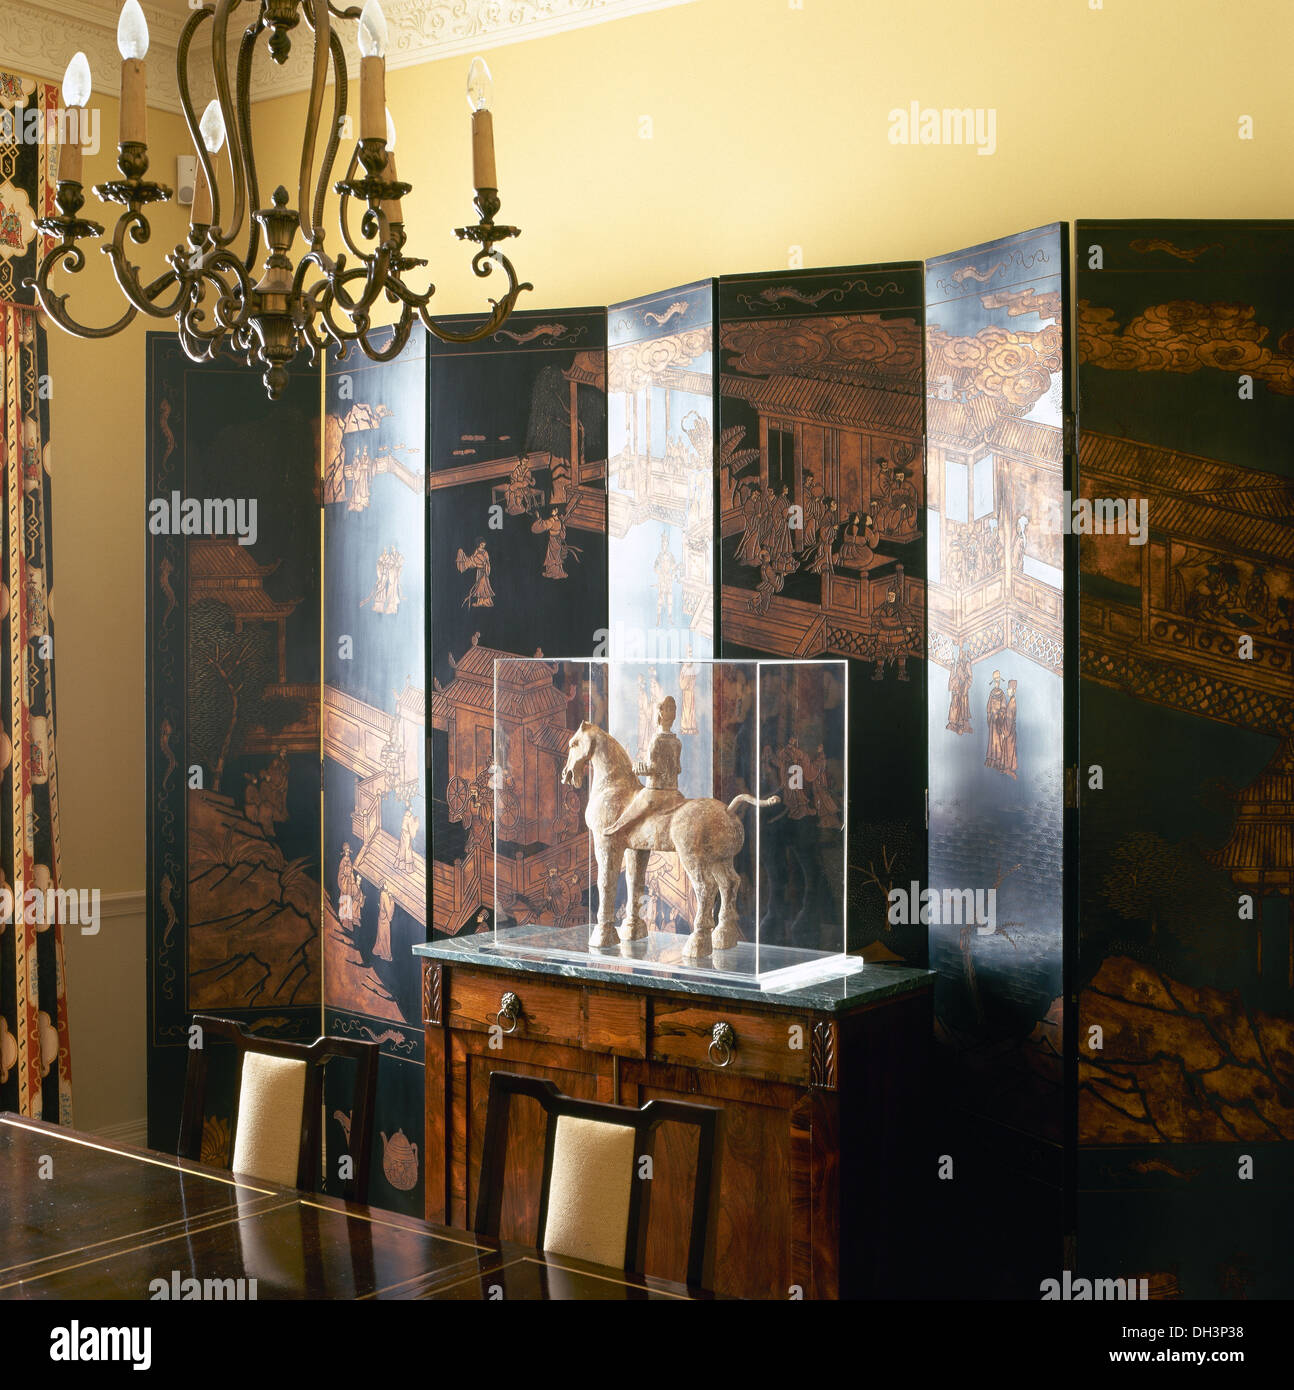 Dining Room With Oriental Statue Of Horse And Rider In Glass Case On Cabinet Front Antique Chinese Folding Screen